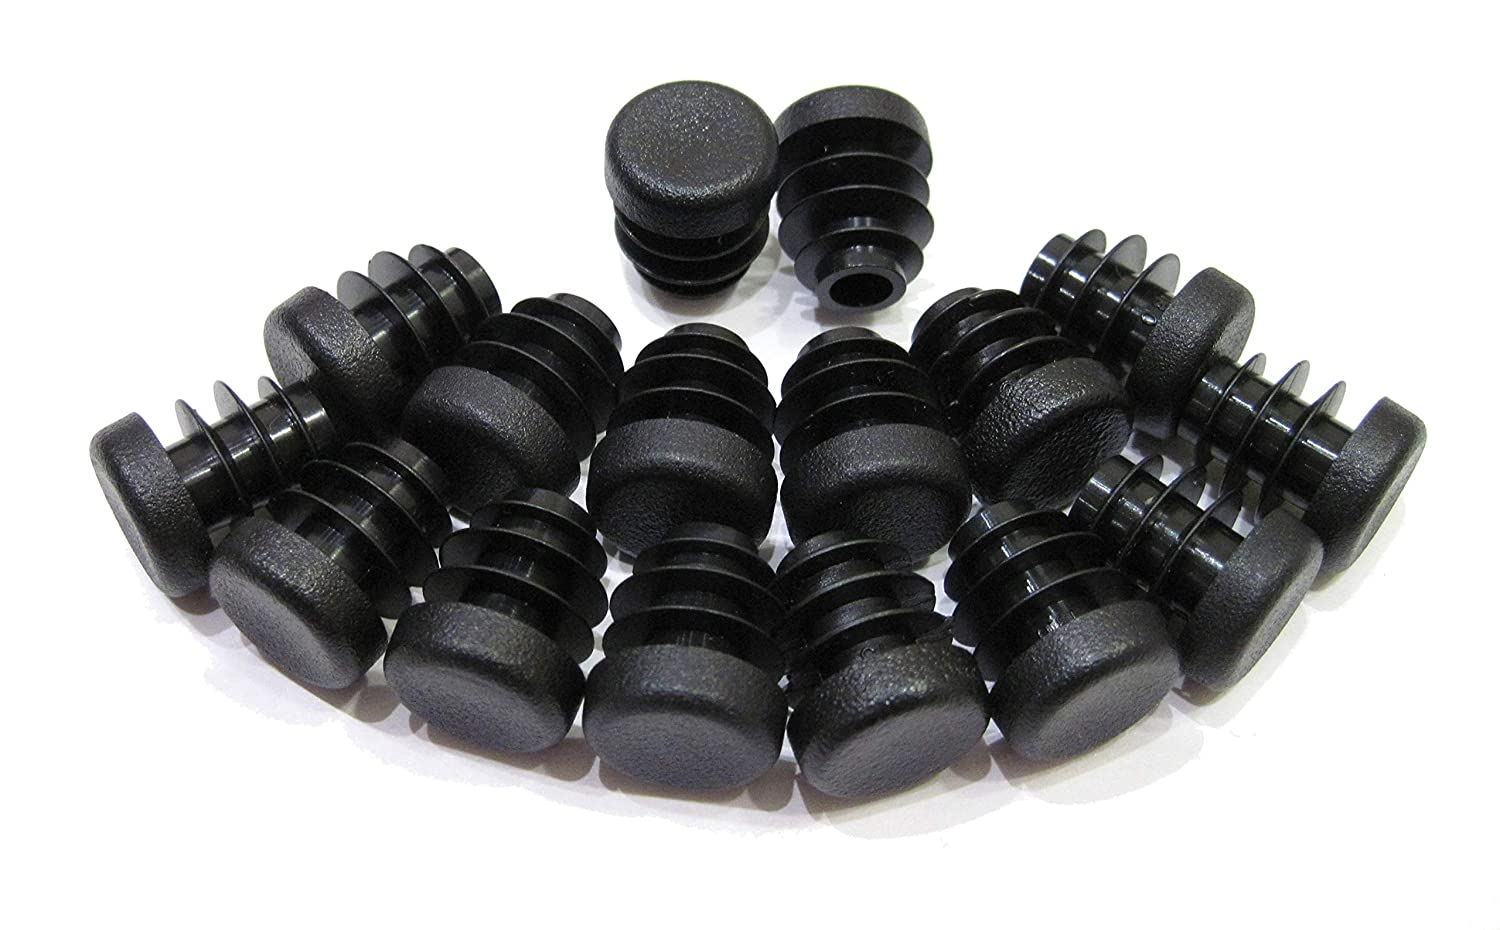 16pcs Pack: 1/2 Inch Round Black Plastic End Cap (for Hole Size from 3/8 to 7/16 inches), Furniture Finishing Plug